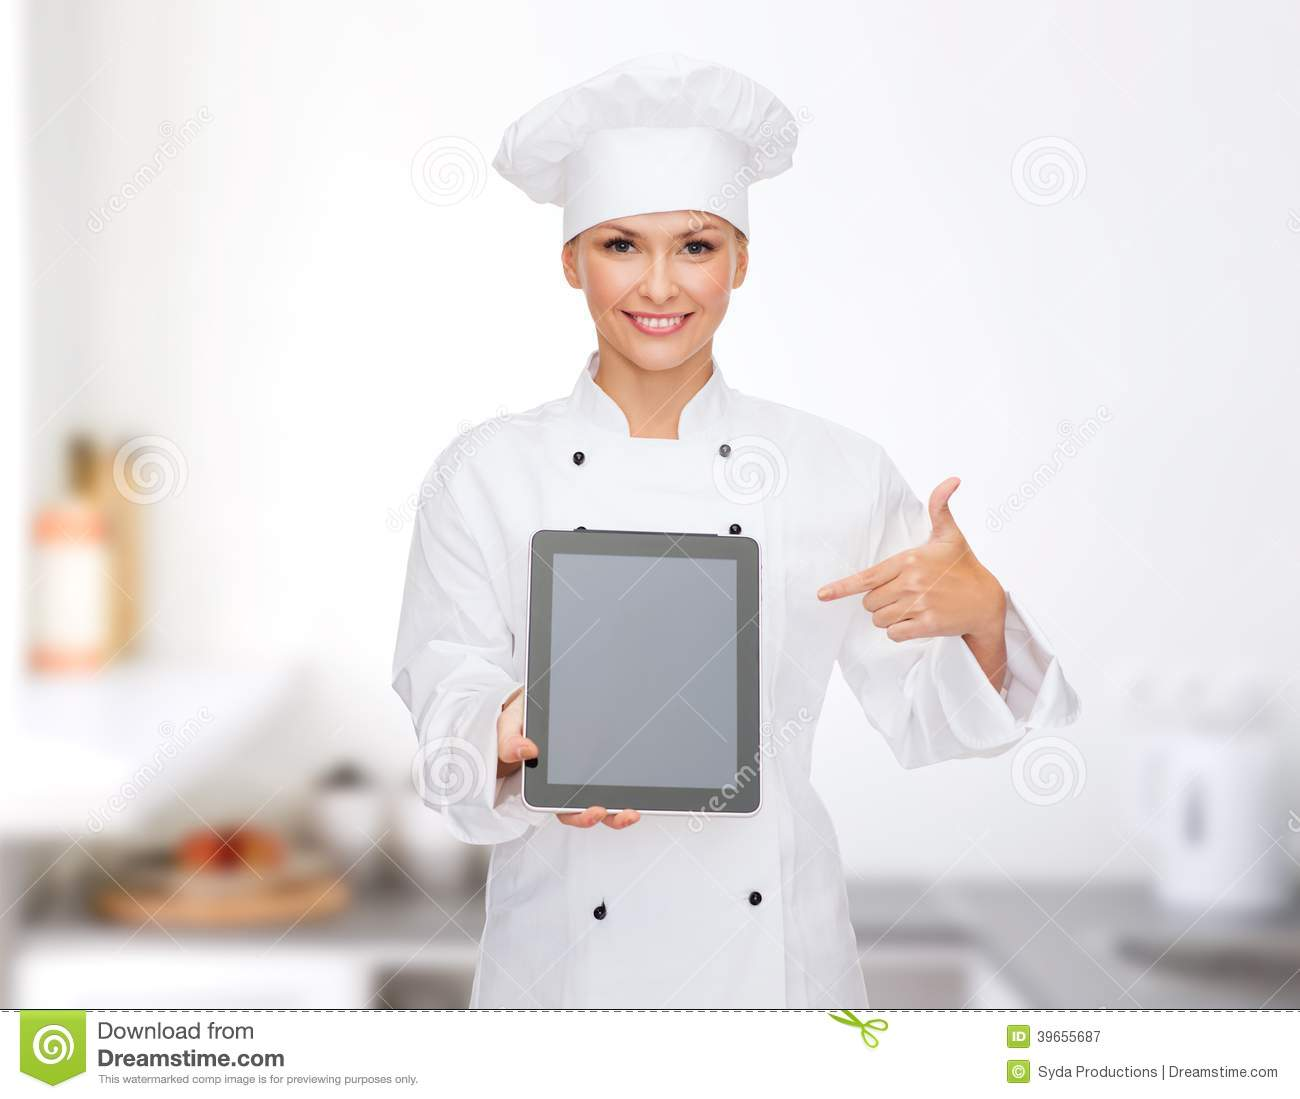 cooking technology Find cooking stock images in hd and millions of other royalty-free stock photos, illustrations, and vectors in the shutterstock collection thousands of new, high.